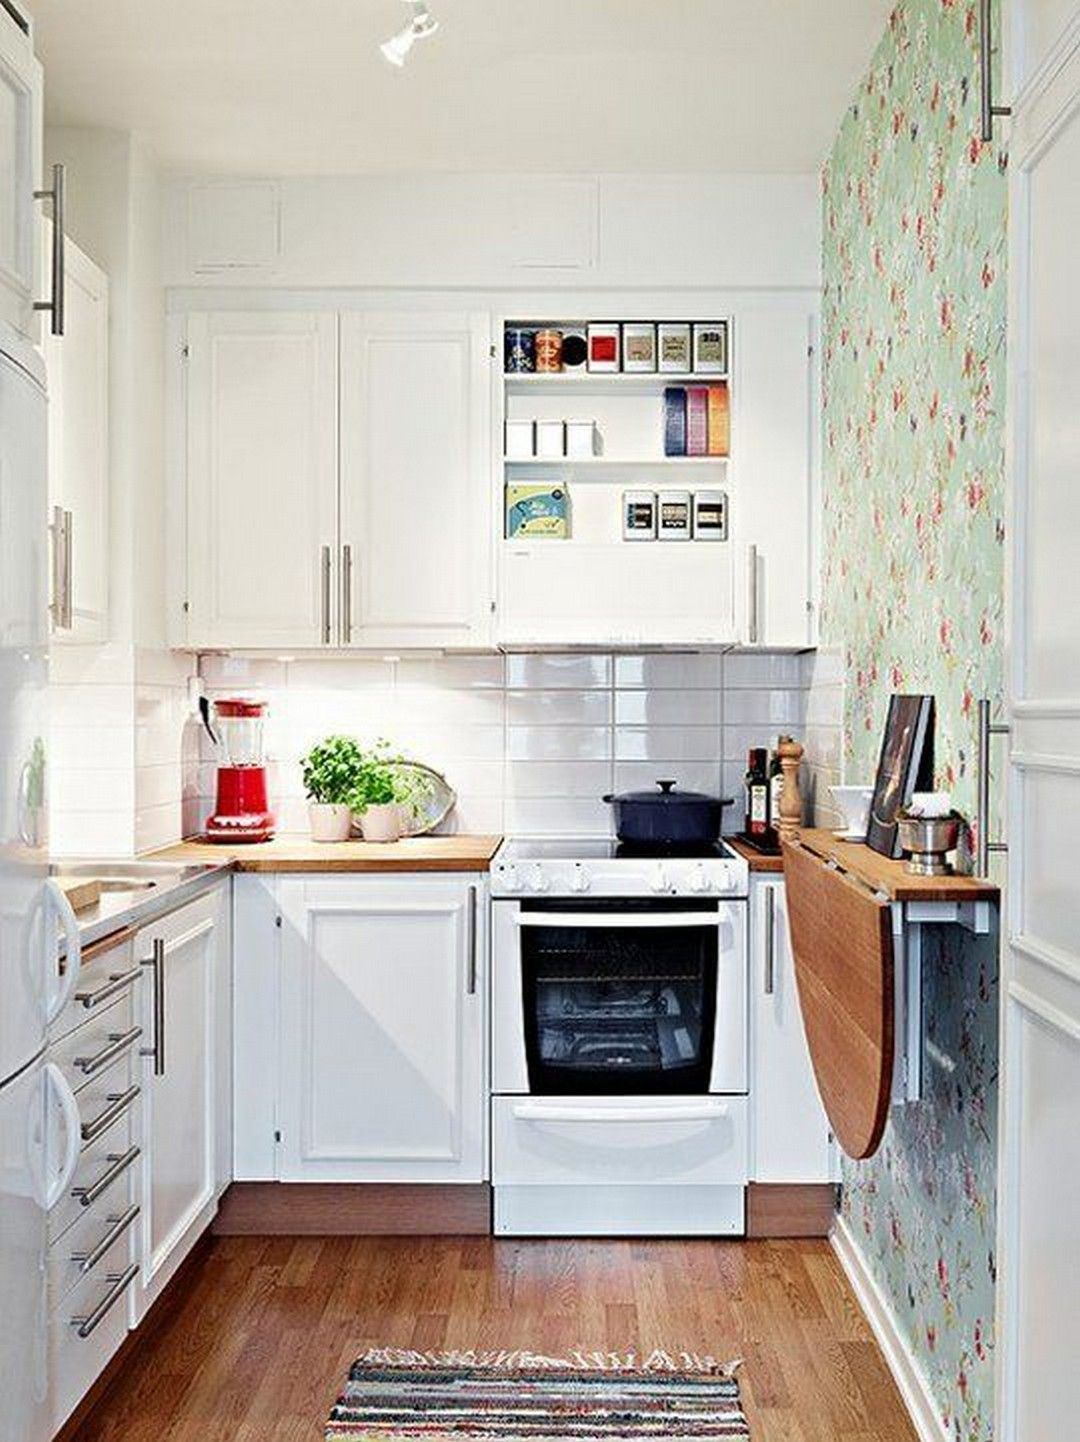 genius kitchens 22 space saving details for small kitchens small rh pinterest com